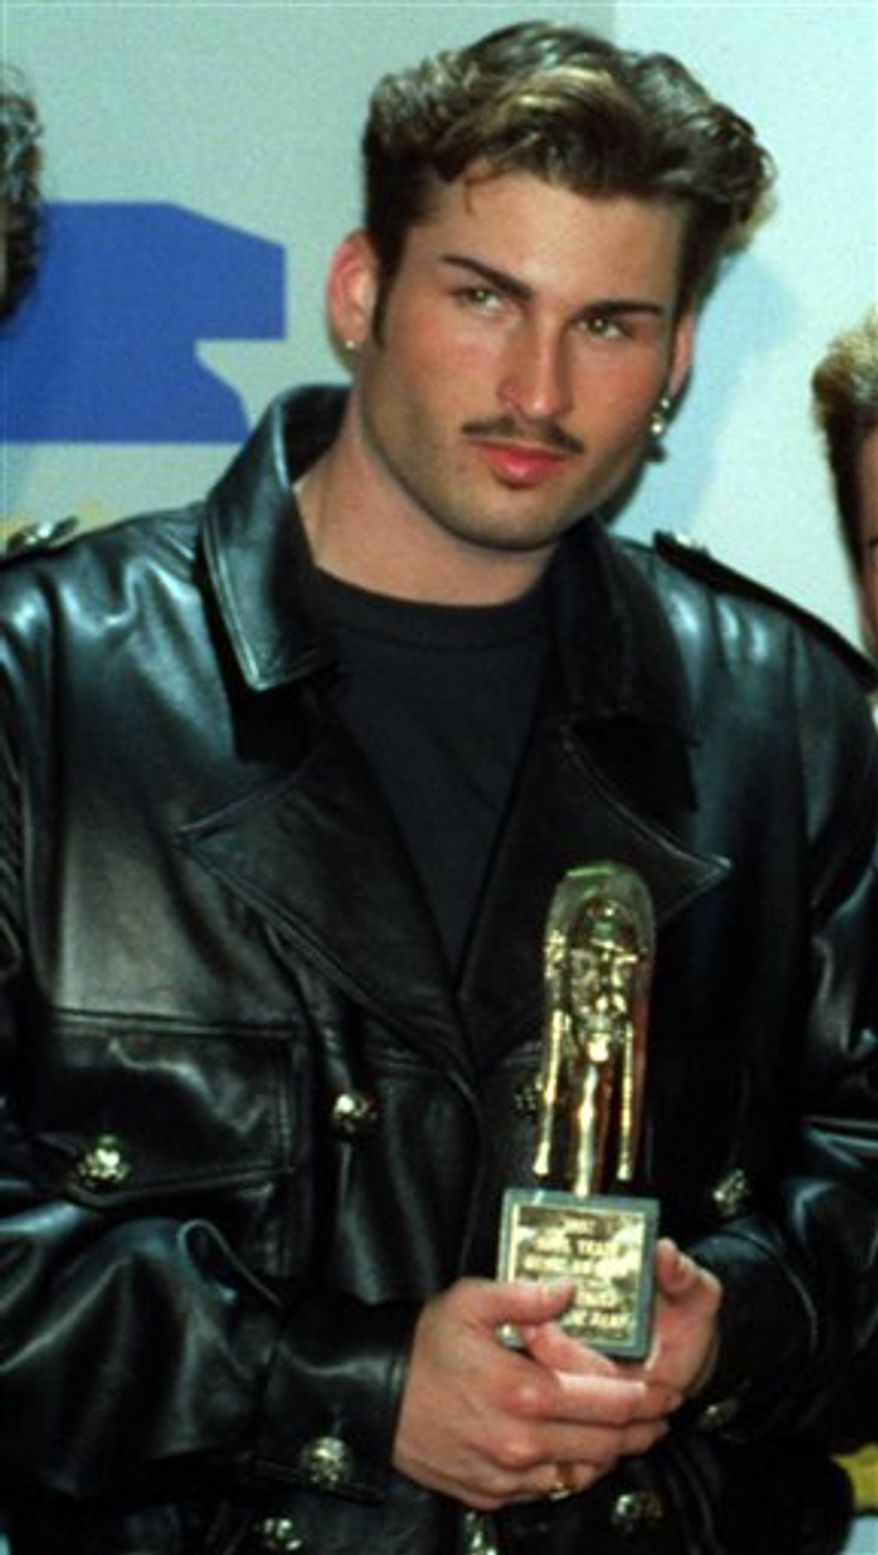 "FILE - Bryan Abrams poses backstage at the Sixth Annual Soul Train Awards where his group, ""Color Me Badd,"" won an award for Best R&B/Soul Single by a Group, in Los Angeles, in this March 10, 1992 file photo. Honolulu police say 40-year-old Bryan Abrams was arrested Tuesday July 20, 2010 after getting into an argument with his wife and throwing her across the room. (AP Photo/Doug Pizac, File)"